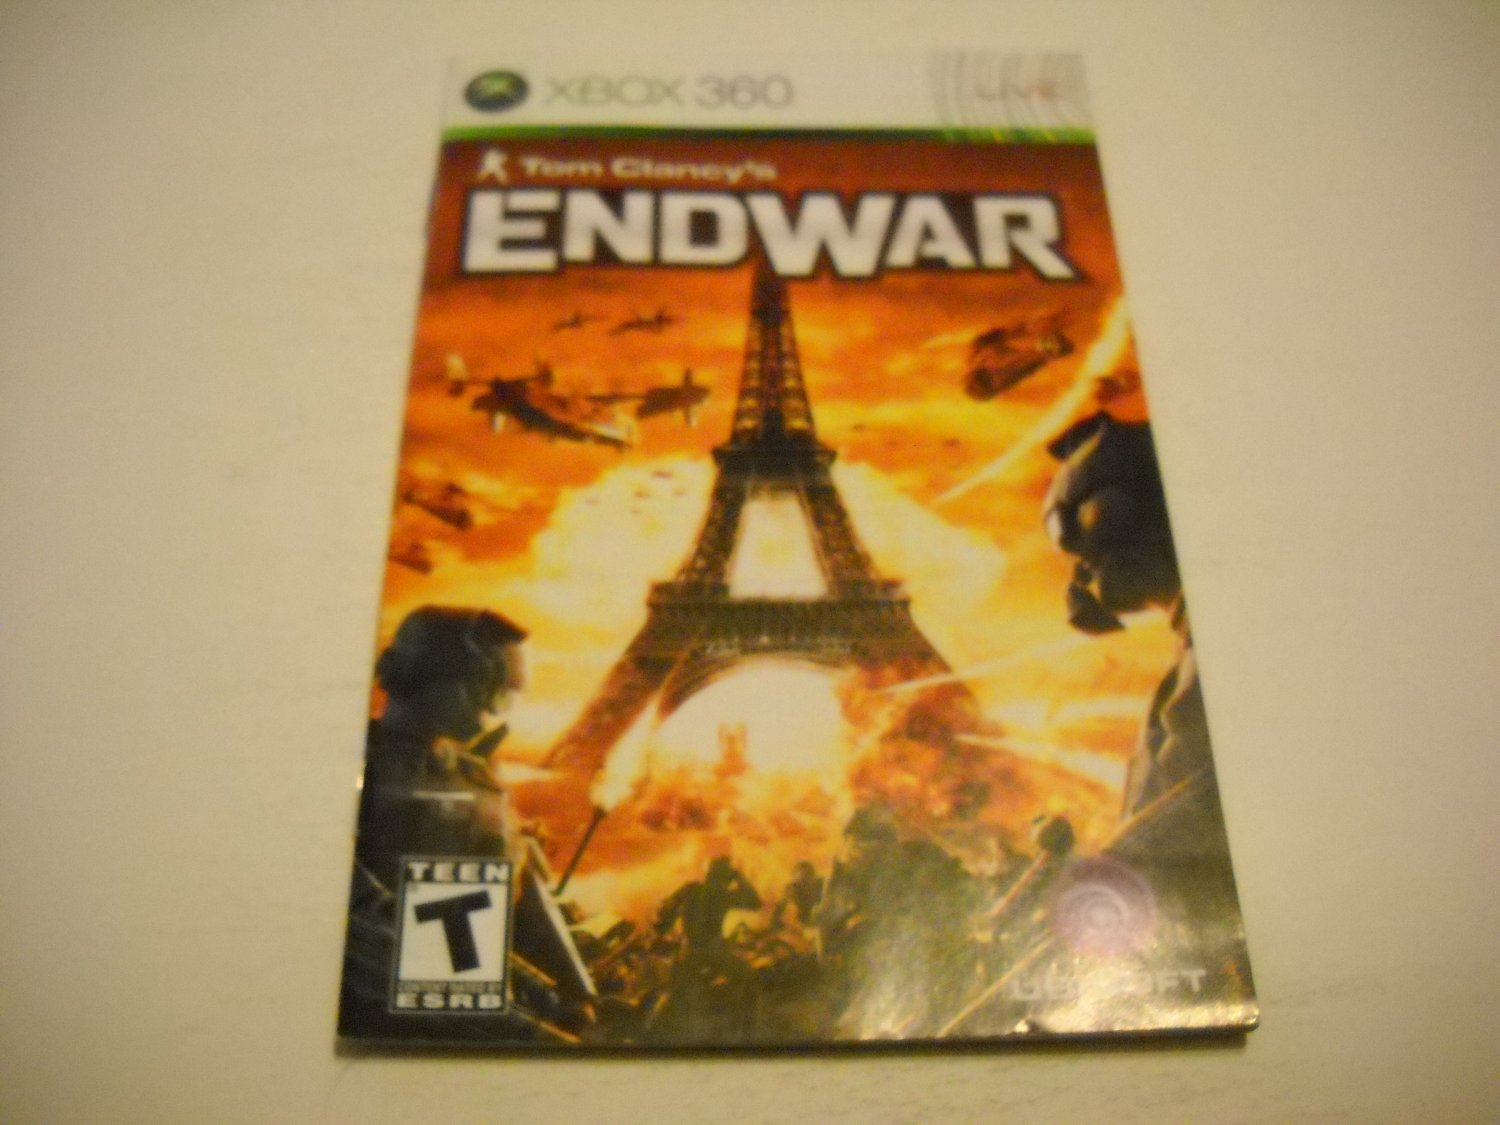 Manual ONLY ~  for Tom Clancy's Endwar   - Xbox 360 Instruction Booklet